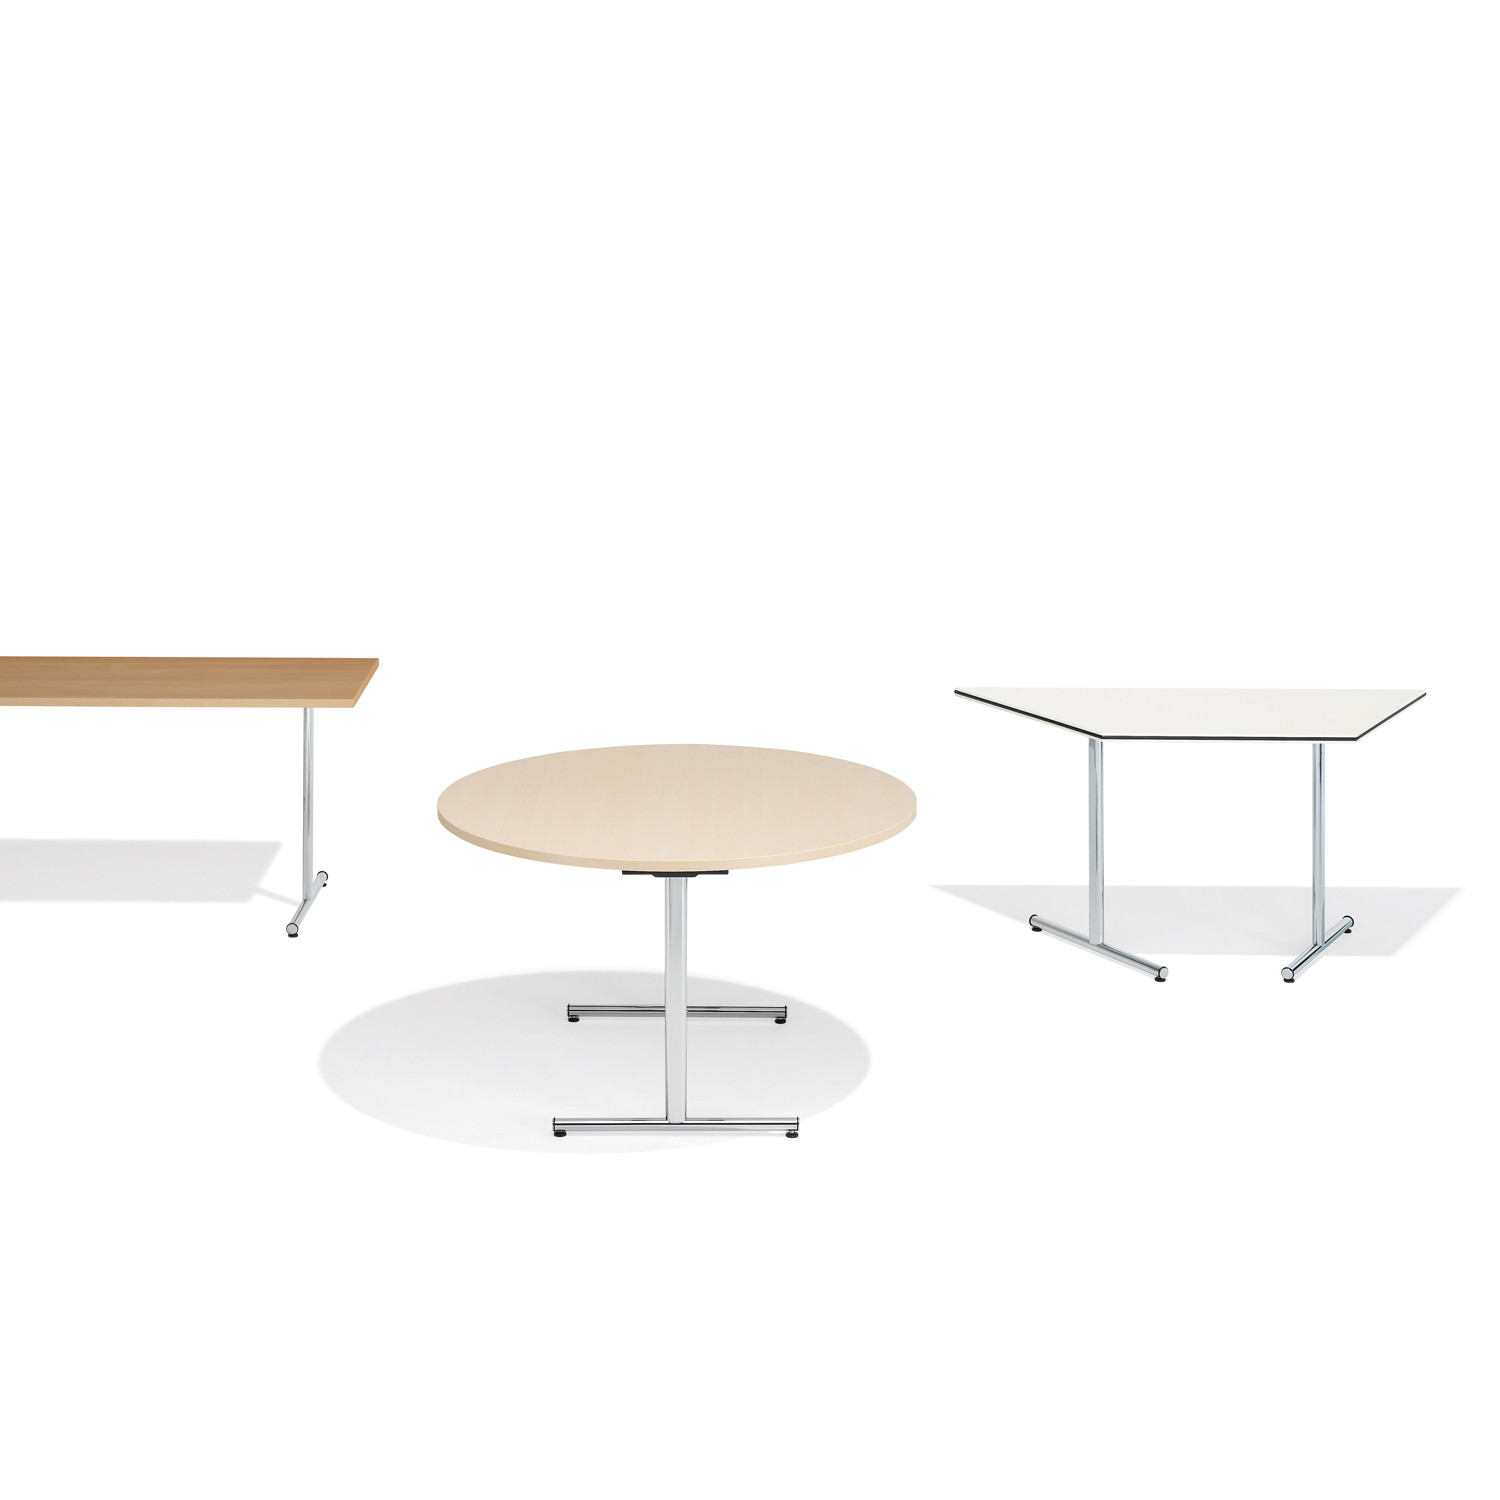 4000 Delgado Tables are available in a variety of top shapes